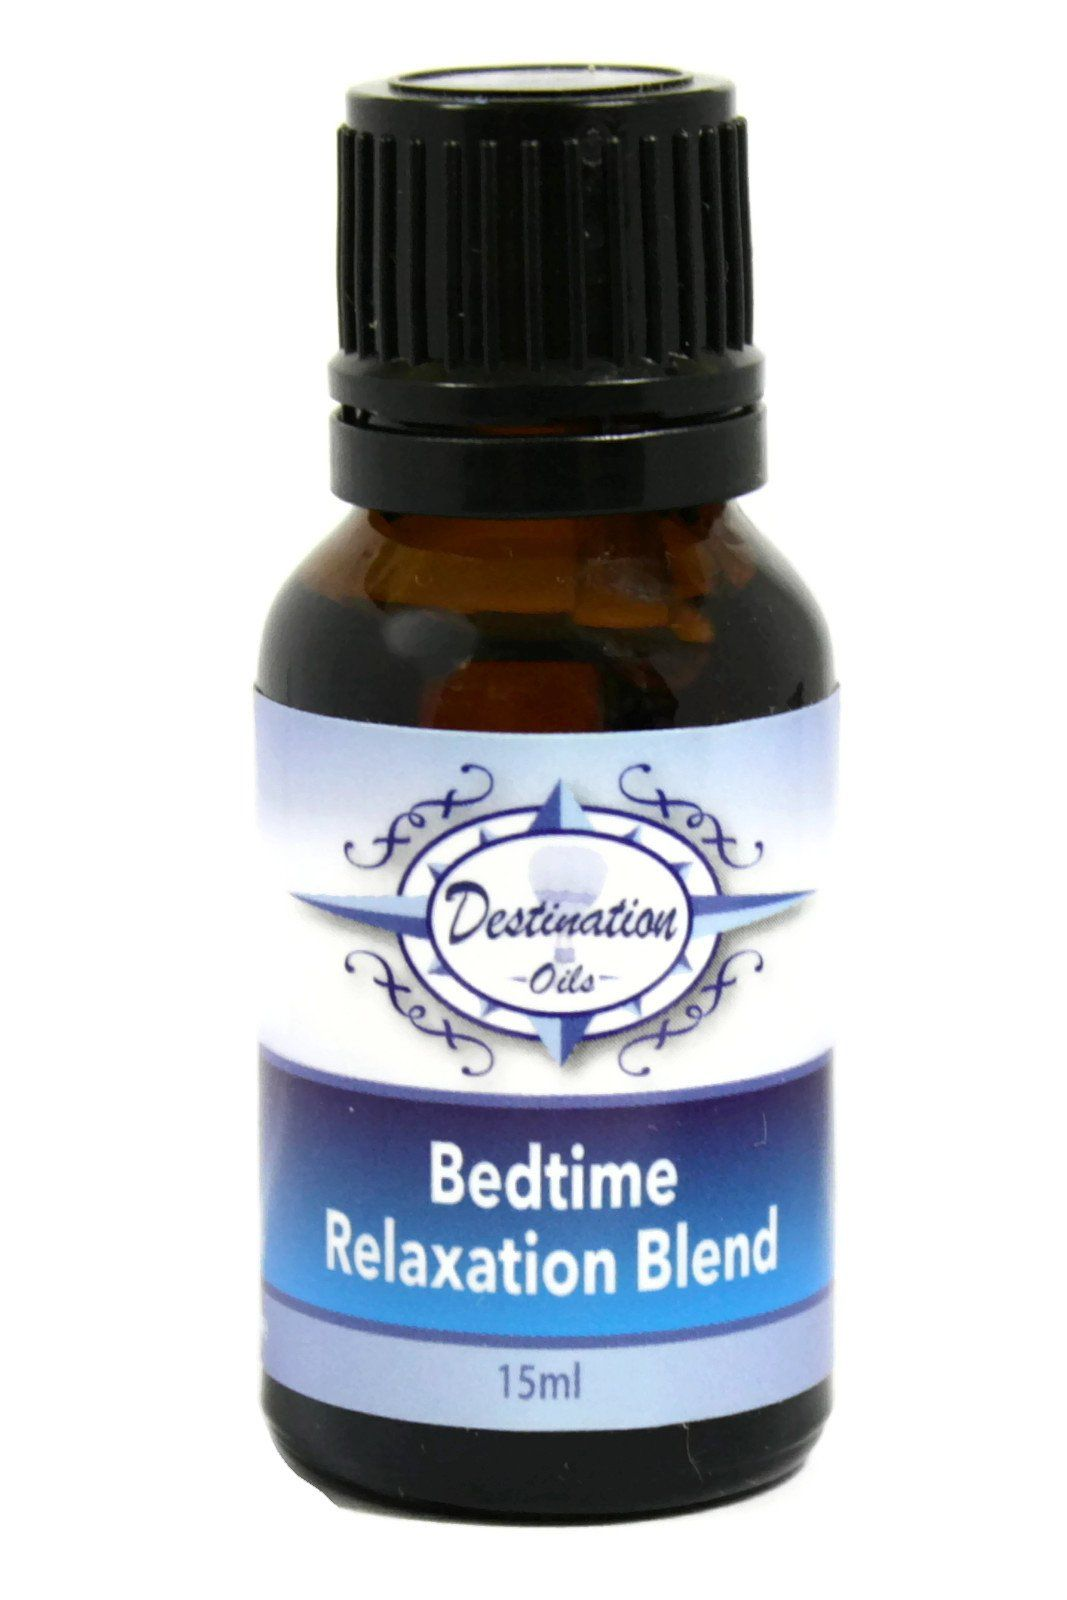 Bedtime - Relaxation & Sleep Essential Oil Blend - 15ml-Essential Oil Blend-Destination Oils